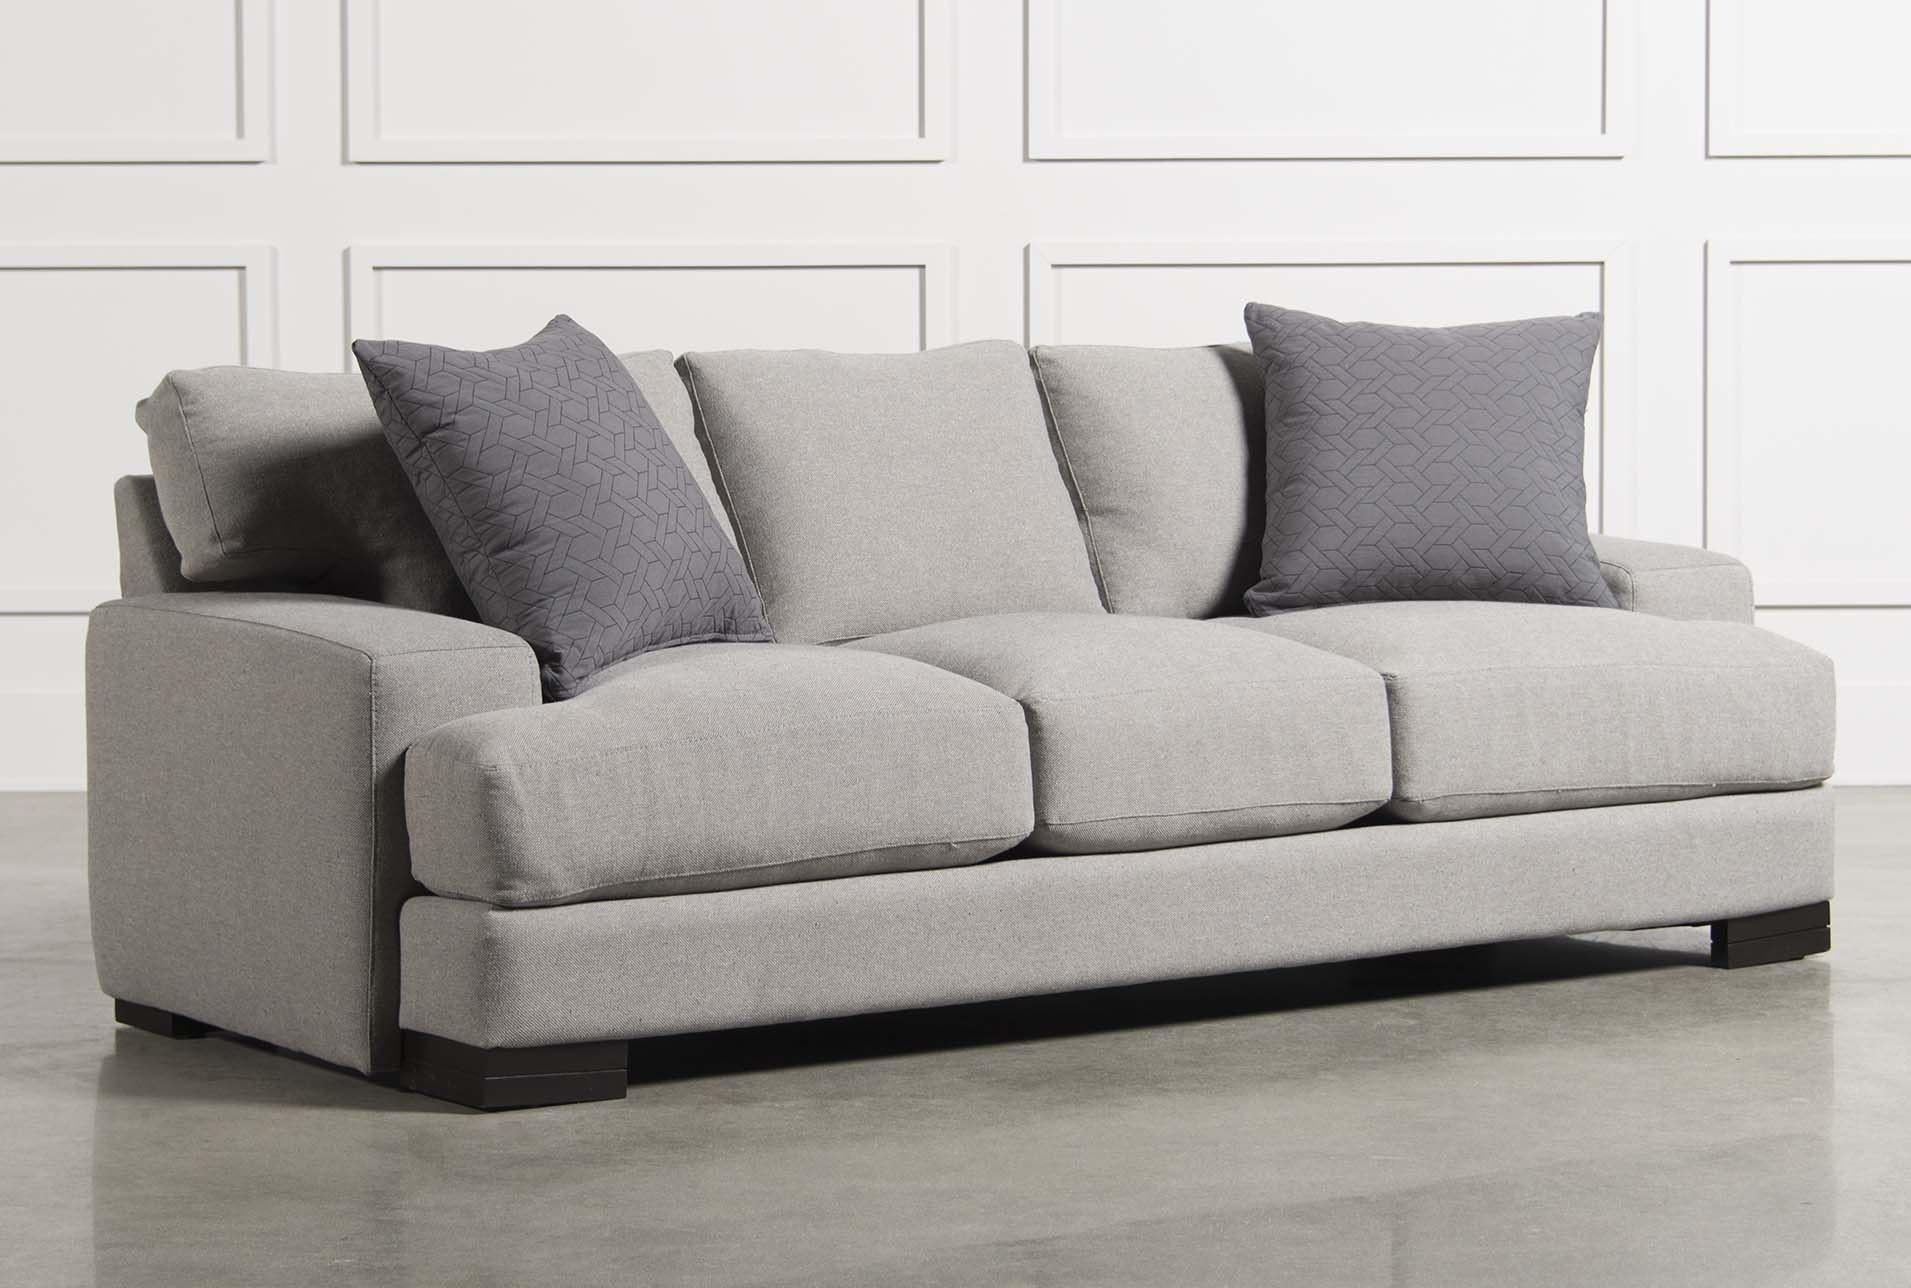 High End Sofa Brands – Fjellkjeden With Regard To High End Sofa (Image 11 of 20)